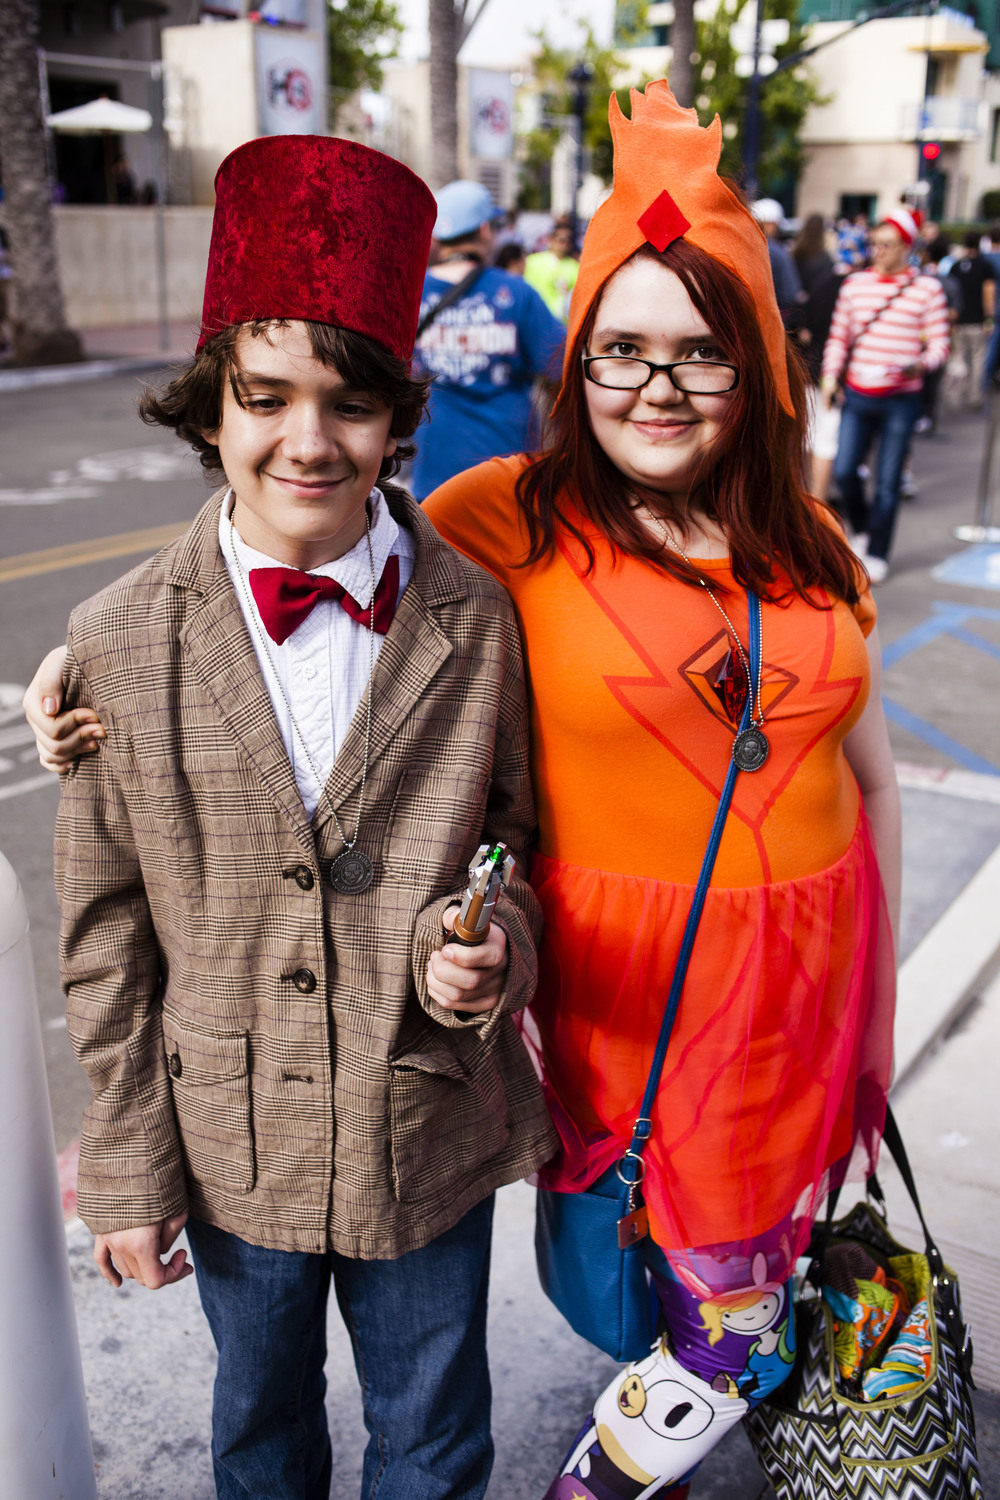 Dr Who and Flame Princess by Joel Feria HIGH.jpg